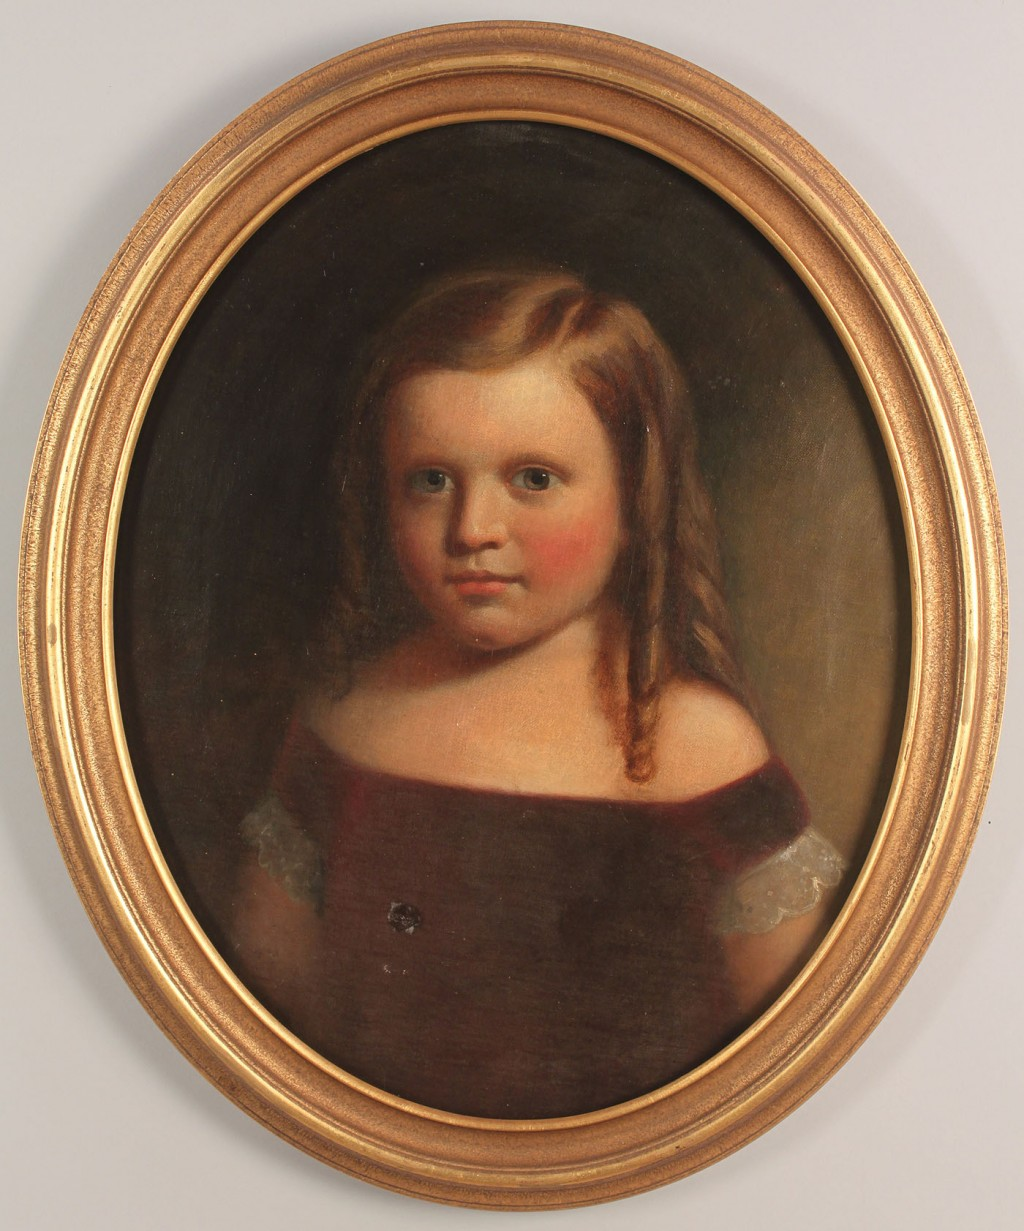 Lot 433: A. B. Rockey, portrait of a little girl